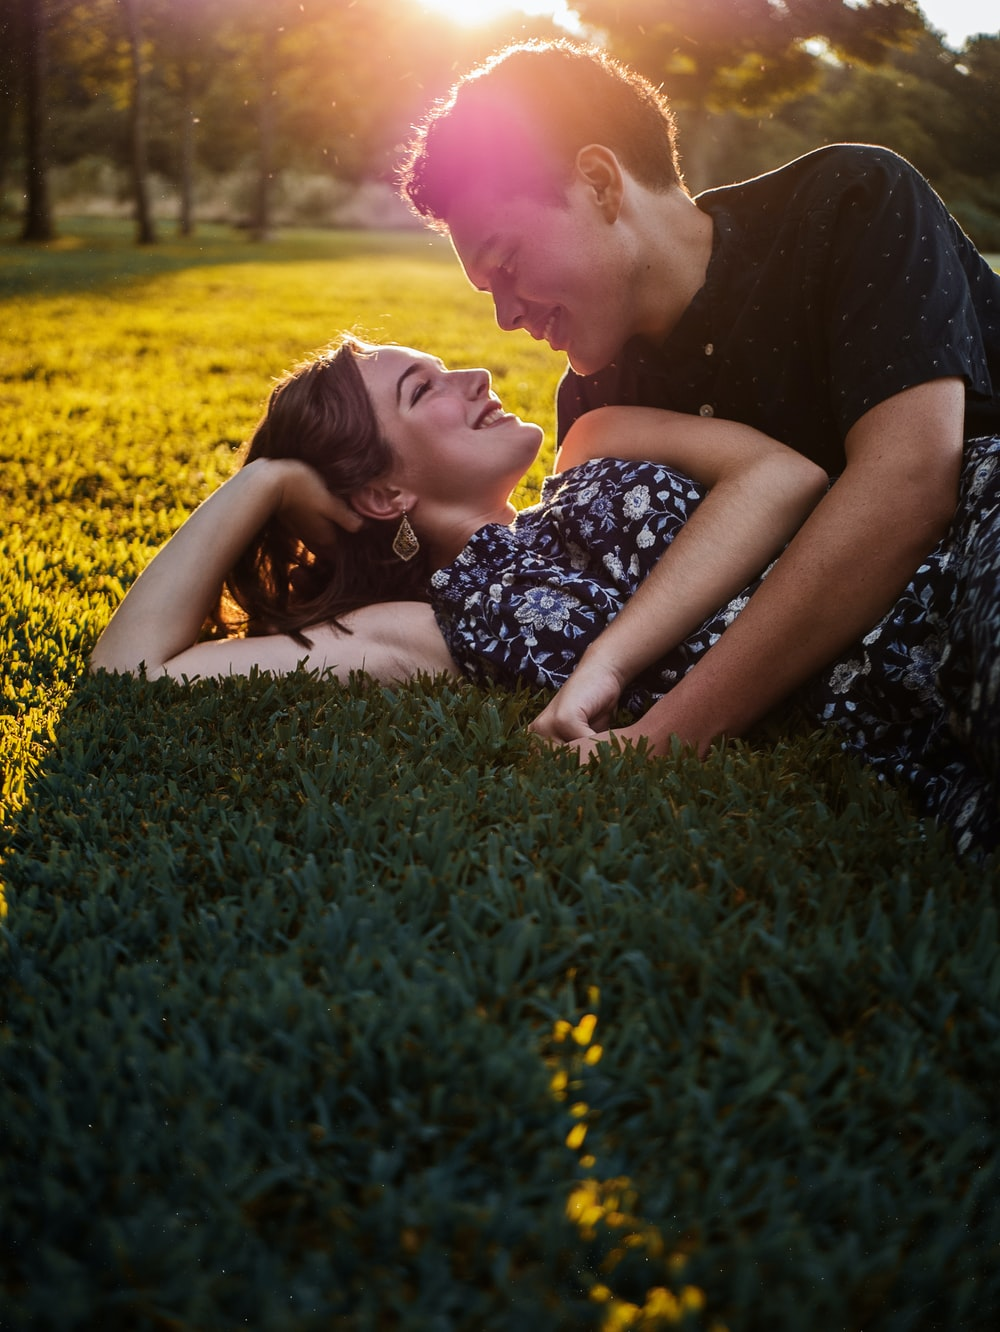 man and woman lying on green grass field during daytime